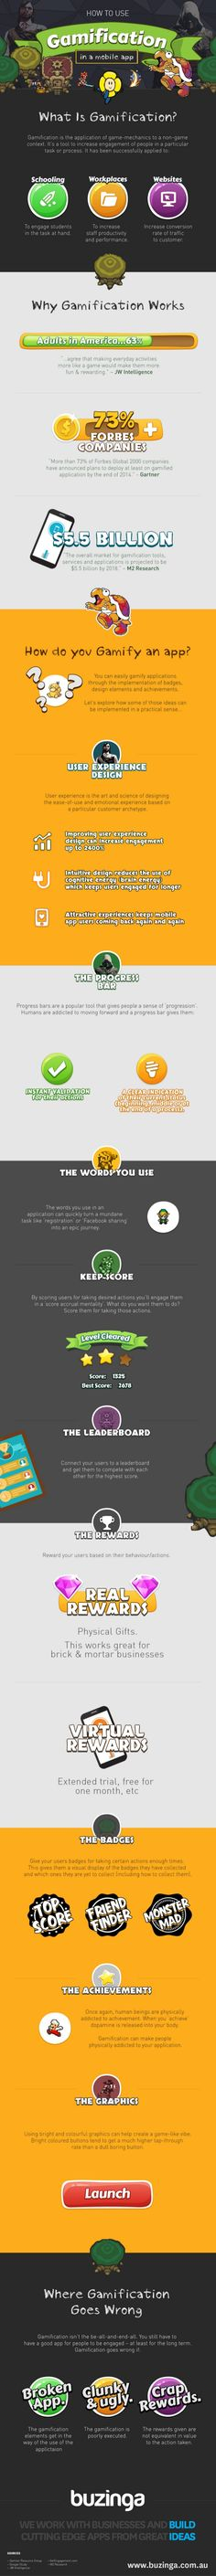 How To Use Gamification In A Mobile App